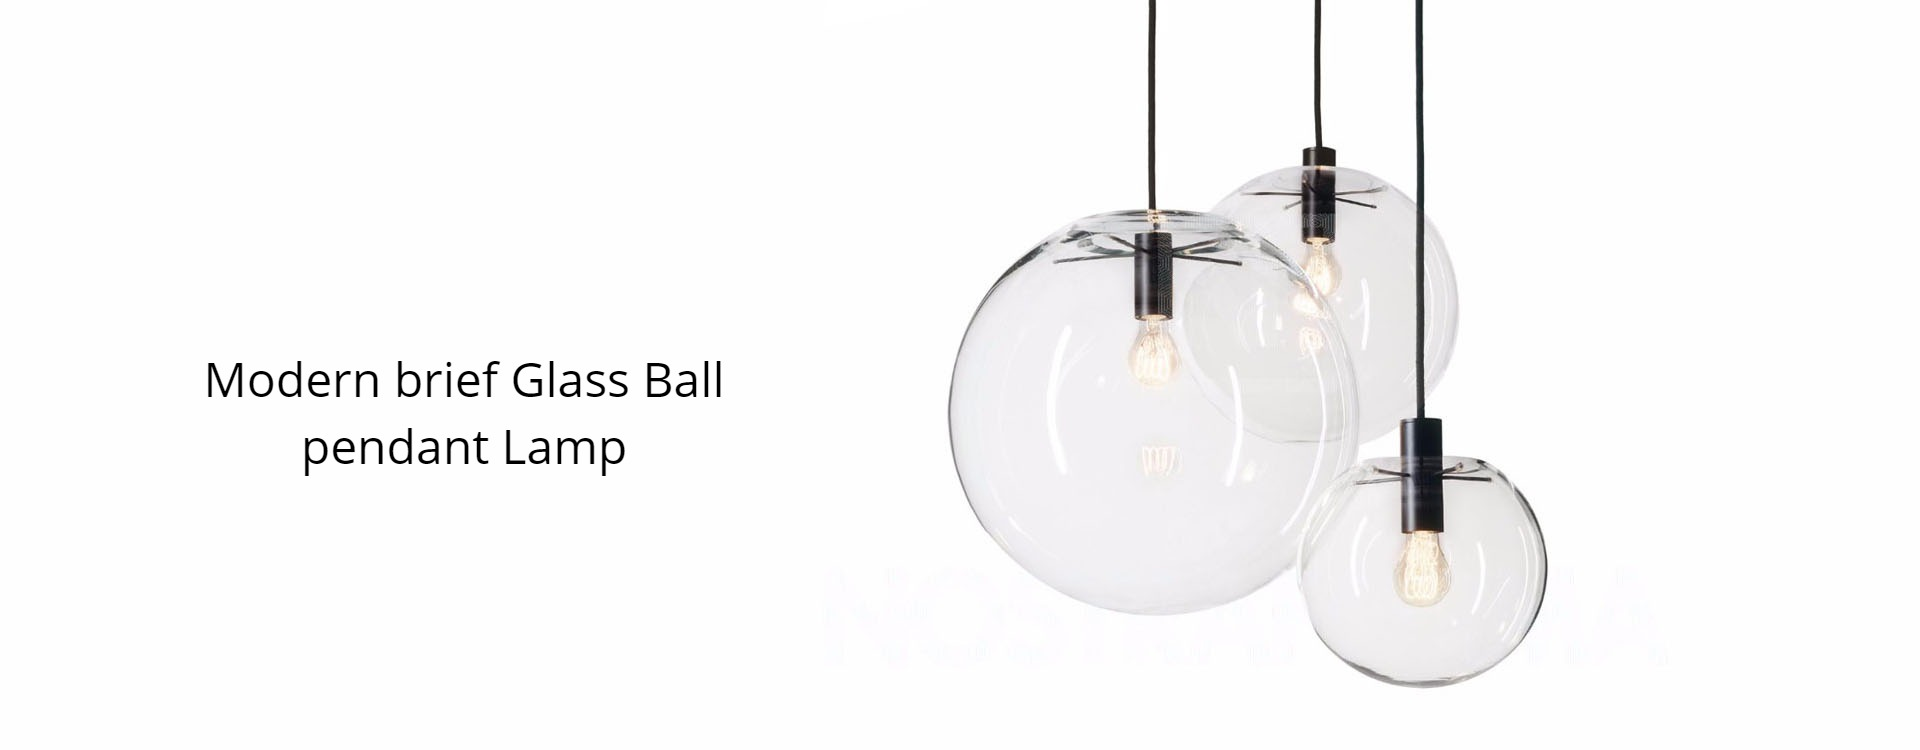 simple white frosted glass ball pendant. shopkeeper recommends simple white frosted glass ball pendant